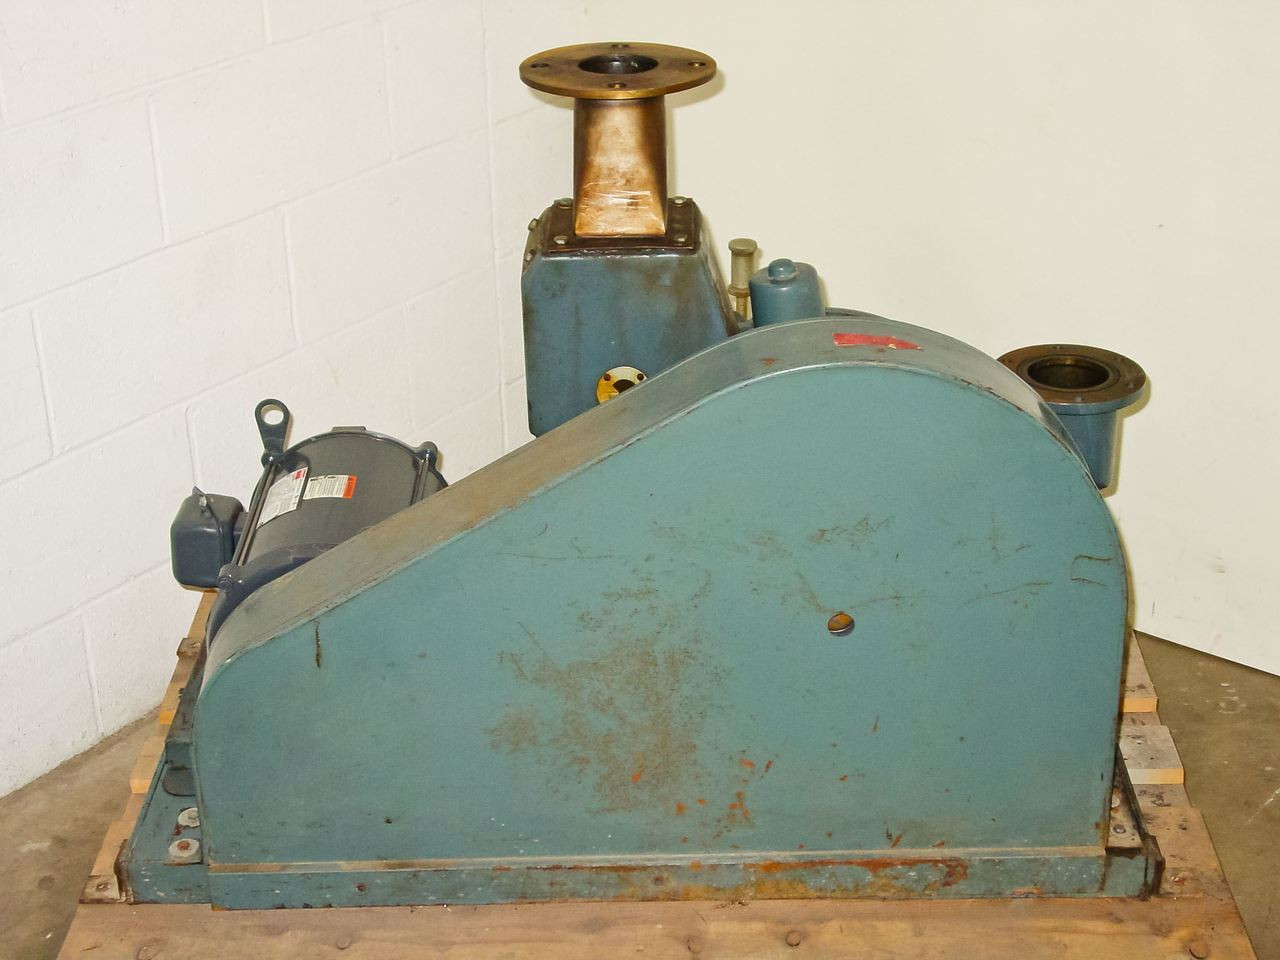 Welch 1398 Duo-Seal 3HP 2-Stage Vacuum Pump   RecycledGoods.com